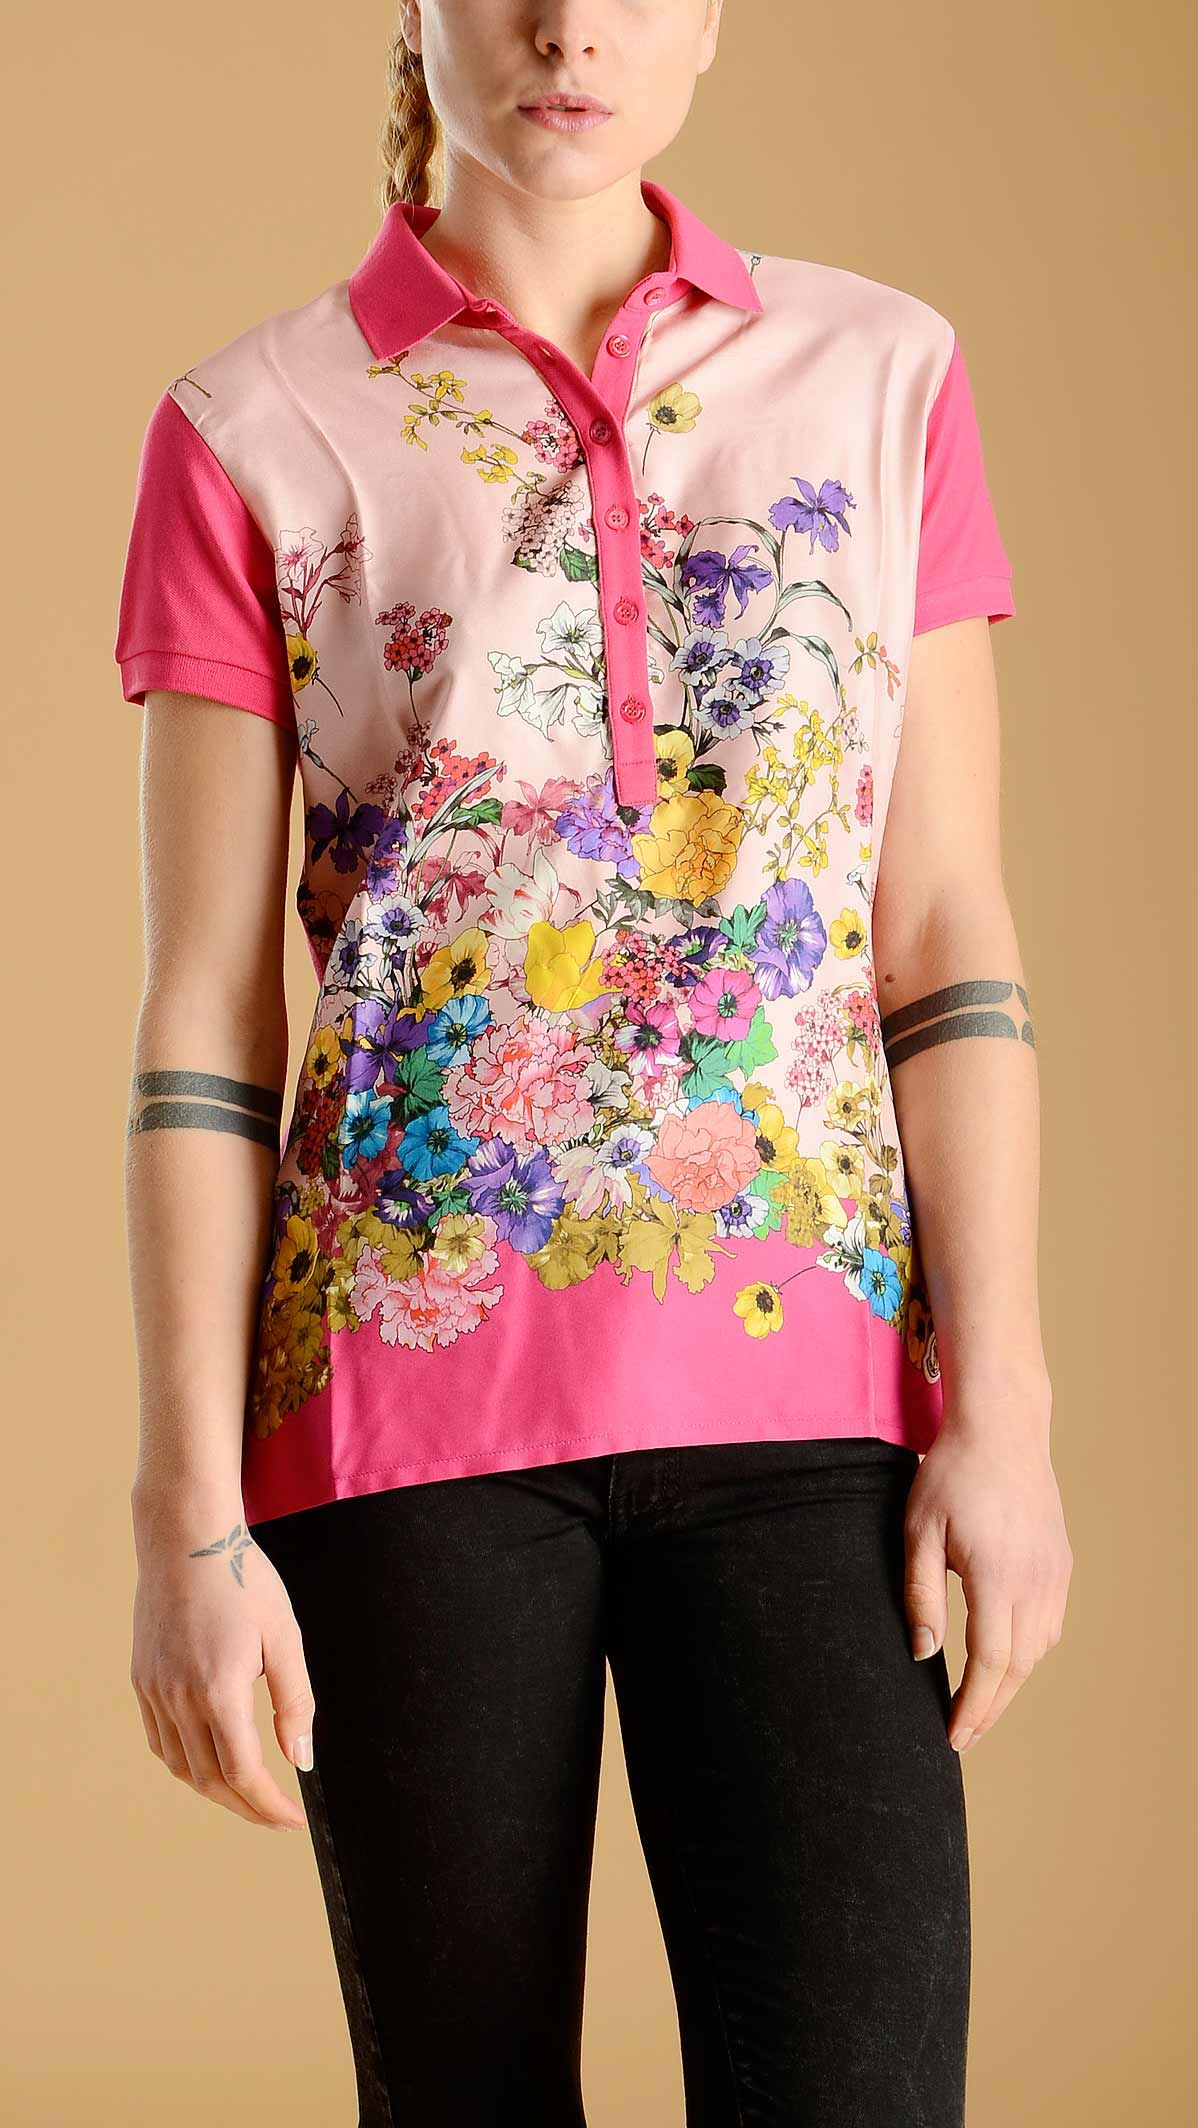 Moncler Short sleeve polo shirt in fuchsia featuring a six button placket and a floral print silk panel at front, 100% silk